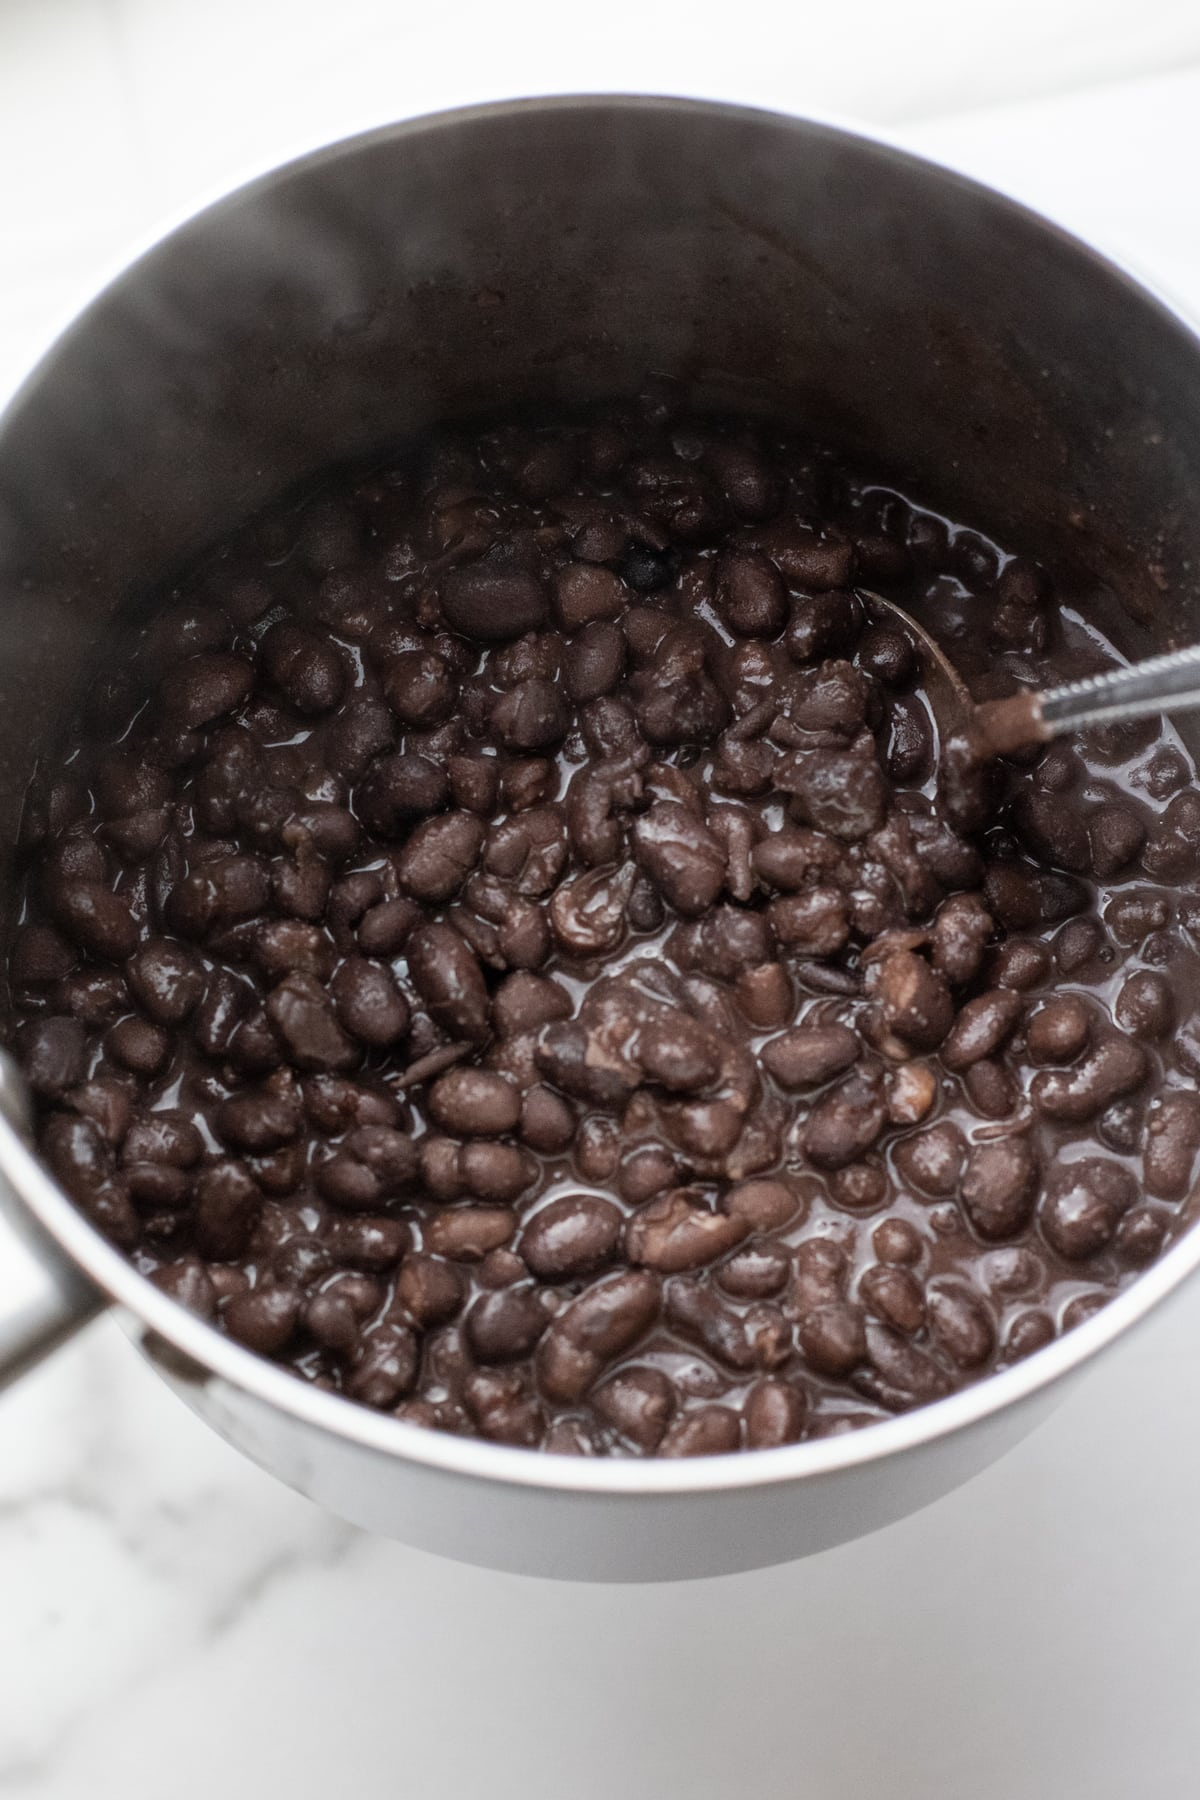 black beans cooking in a stainless steel pot.